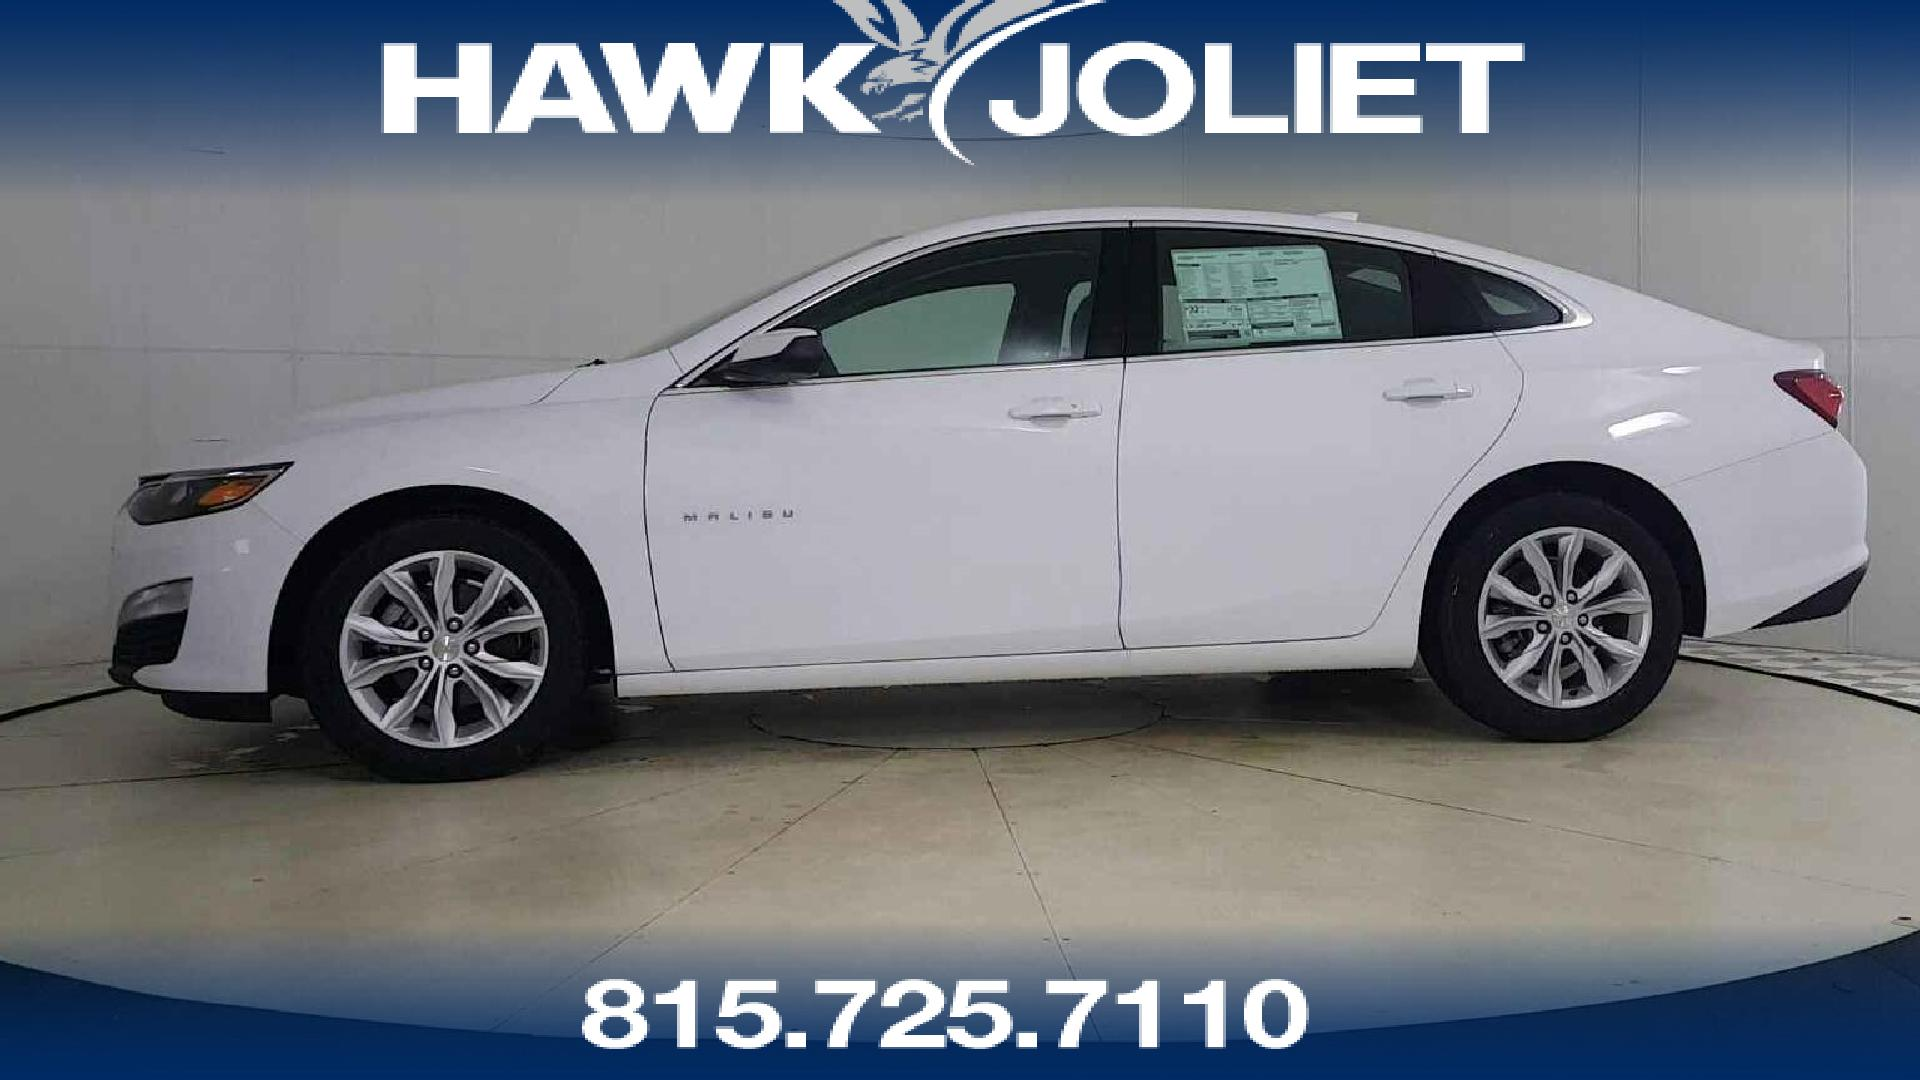 Volvo Dealer Delft 2019 Chevrolet Malibu For Sale In Joliet 1g1zd5st6kf203712